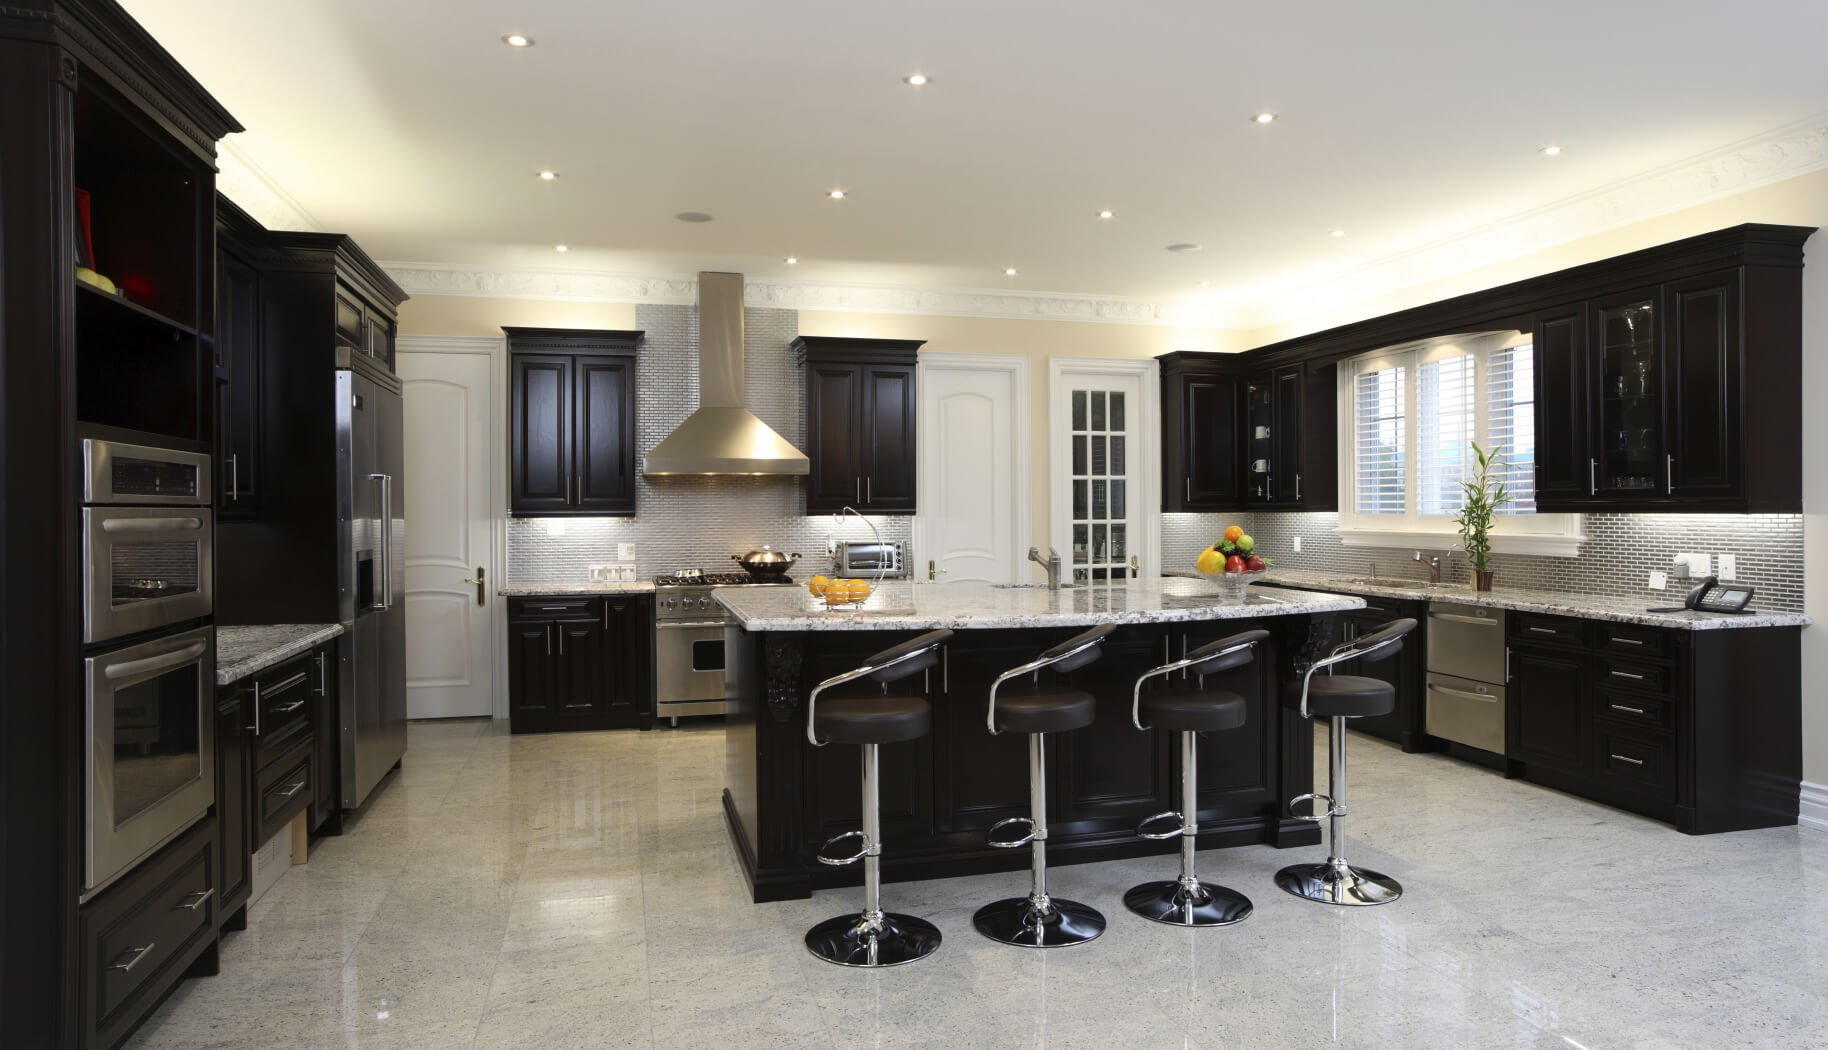 Spacious modern kitchen with dark cabinetry breakfast bar 4 modern diner style stools and